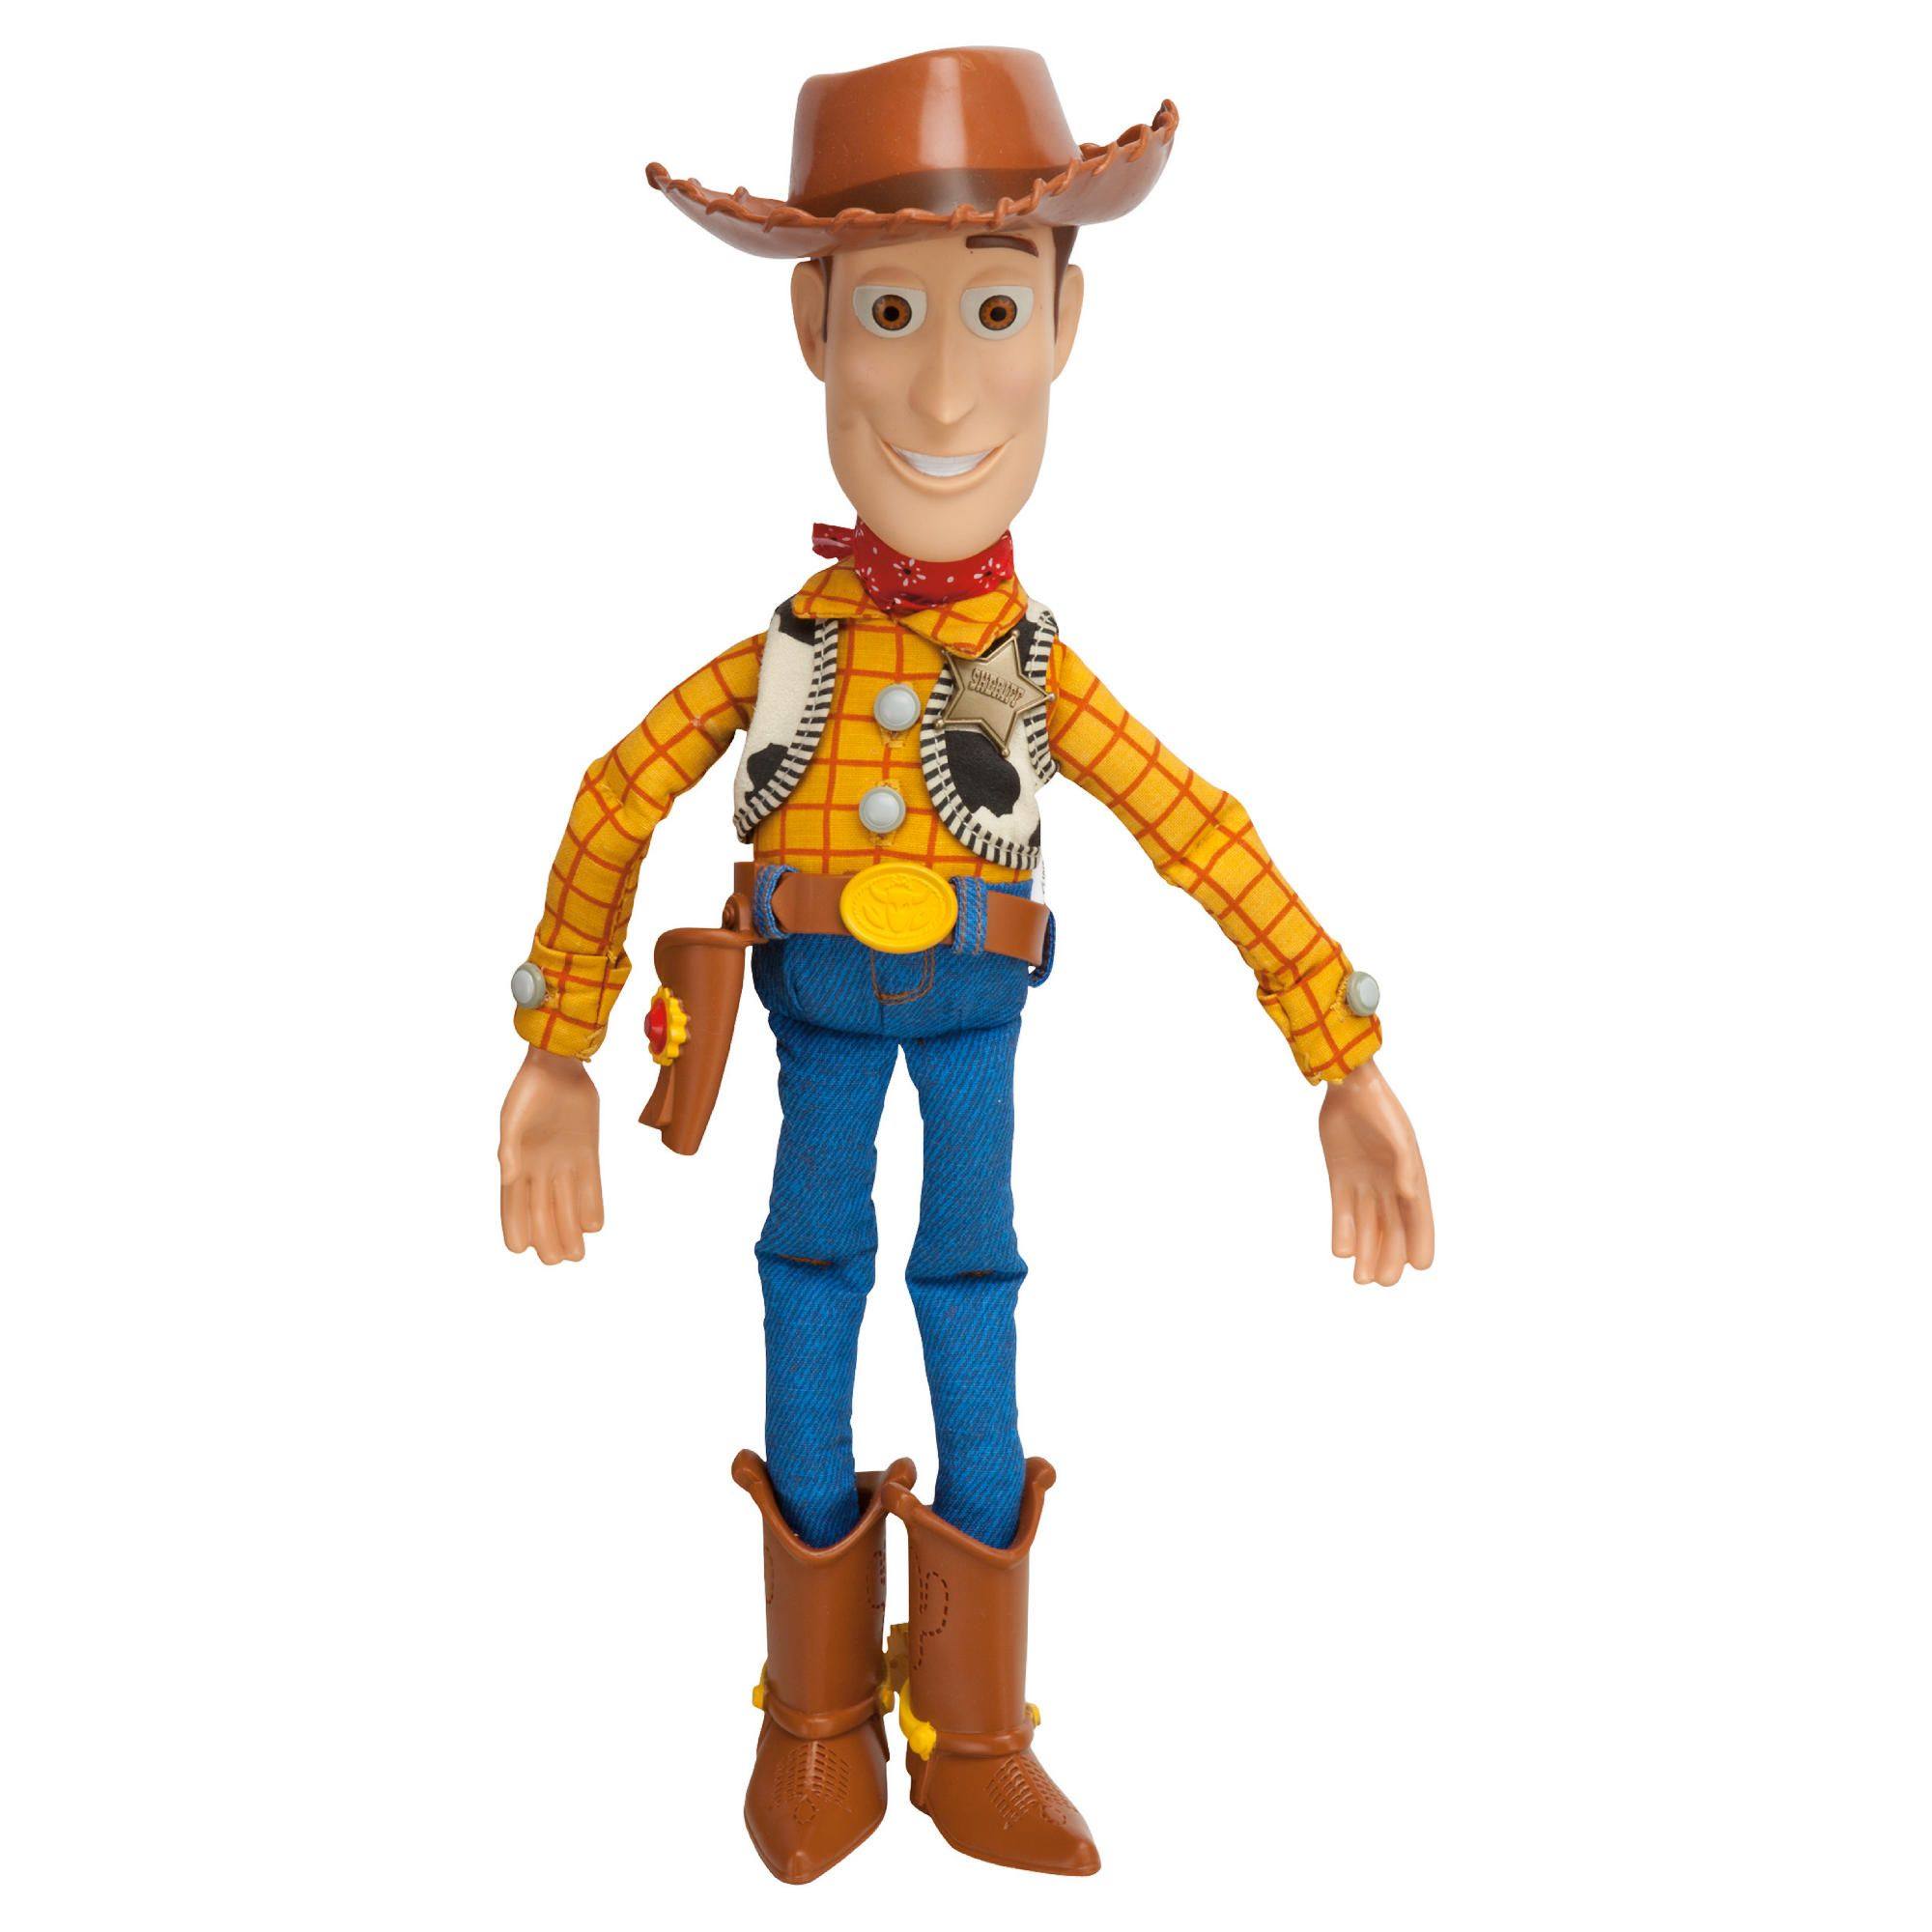 Toy Story: Toy Story 3 12 Inch Talking Sheriff Woody Figure